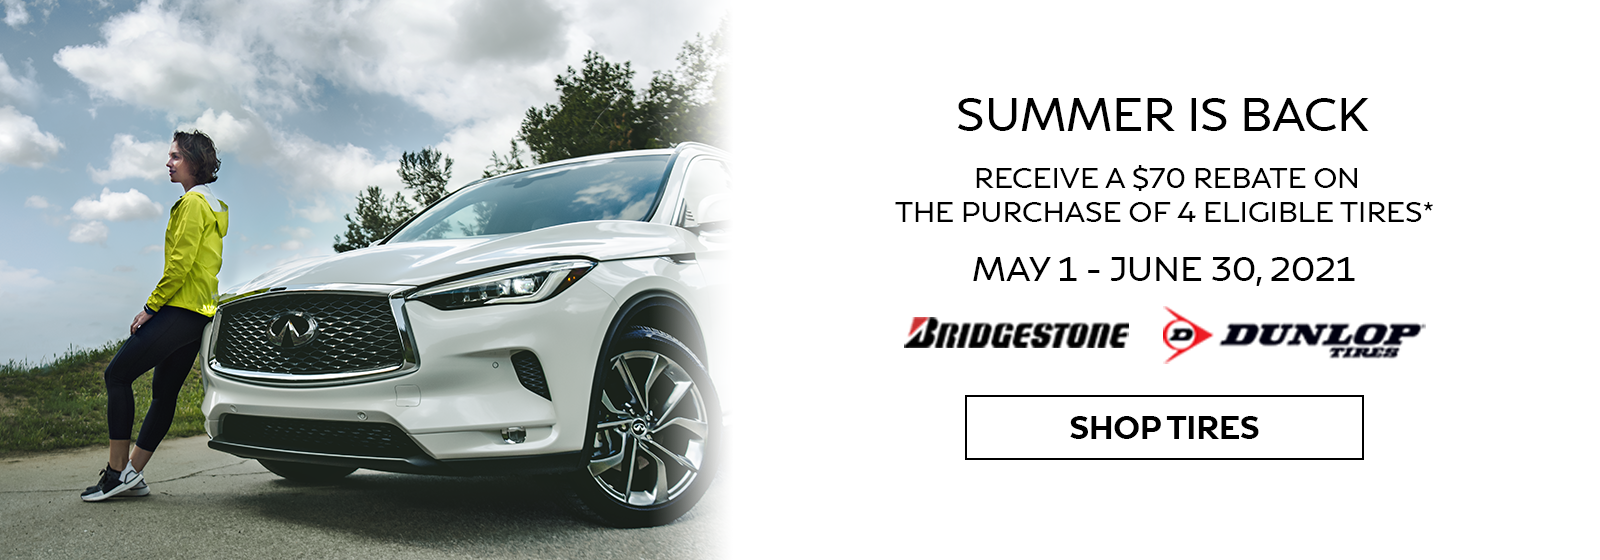 Receive a $70 Rebate on Purchase of 4 Eligible Tires